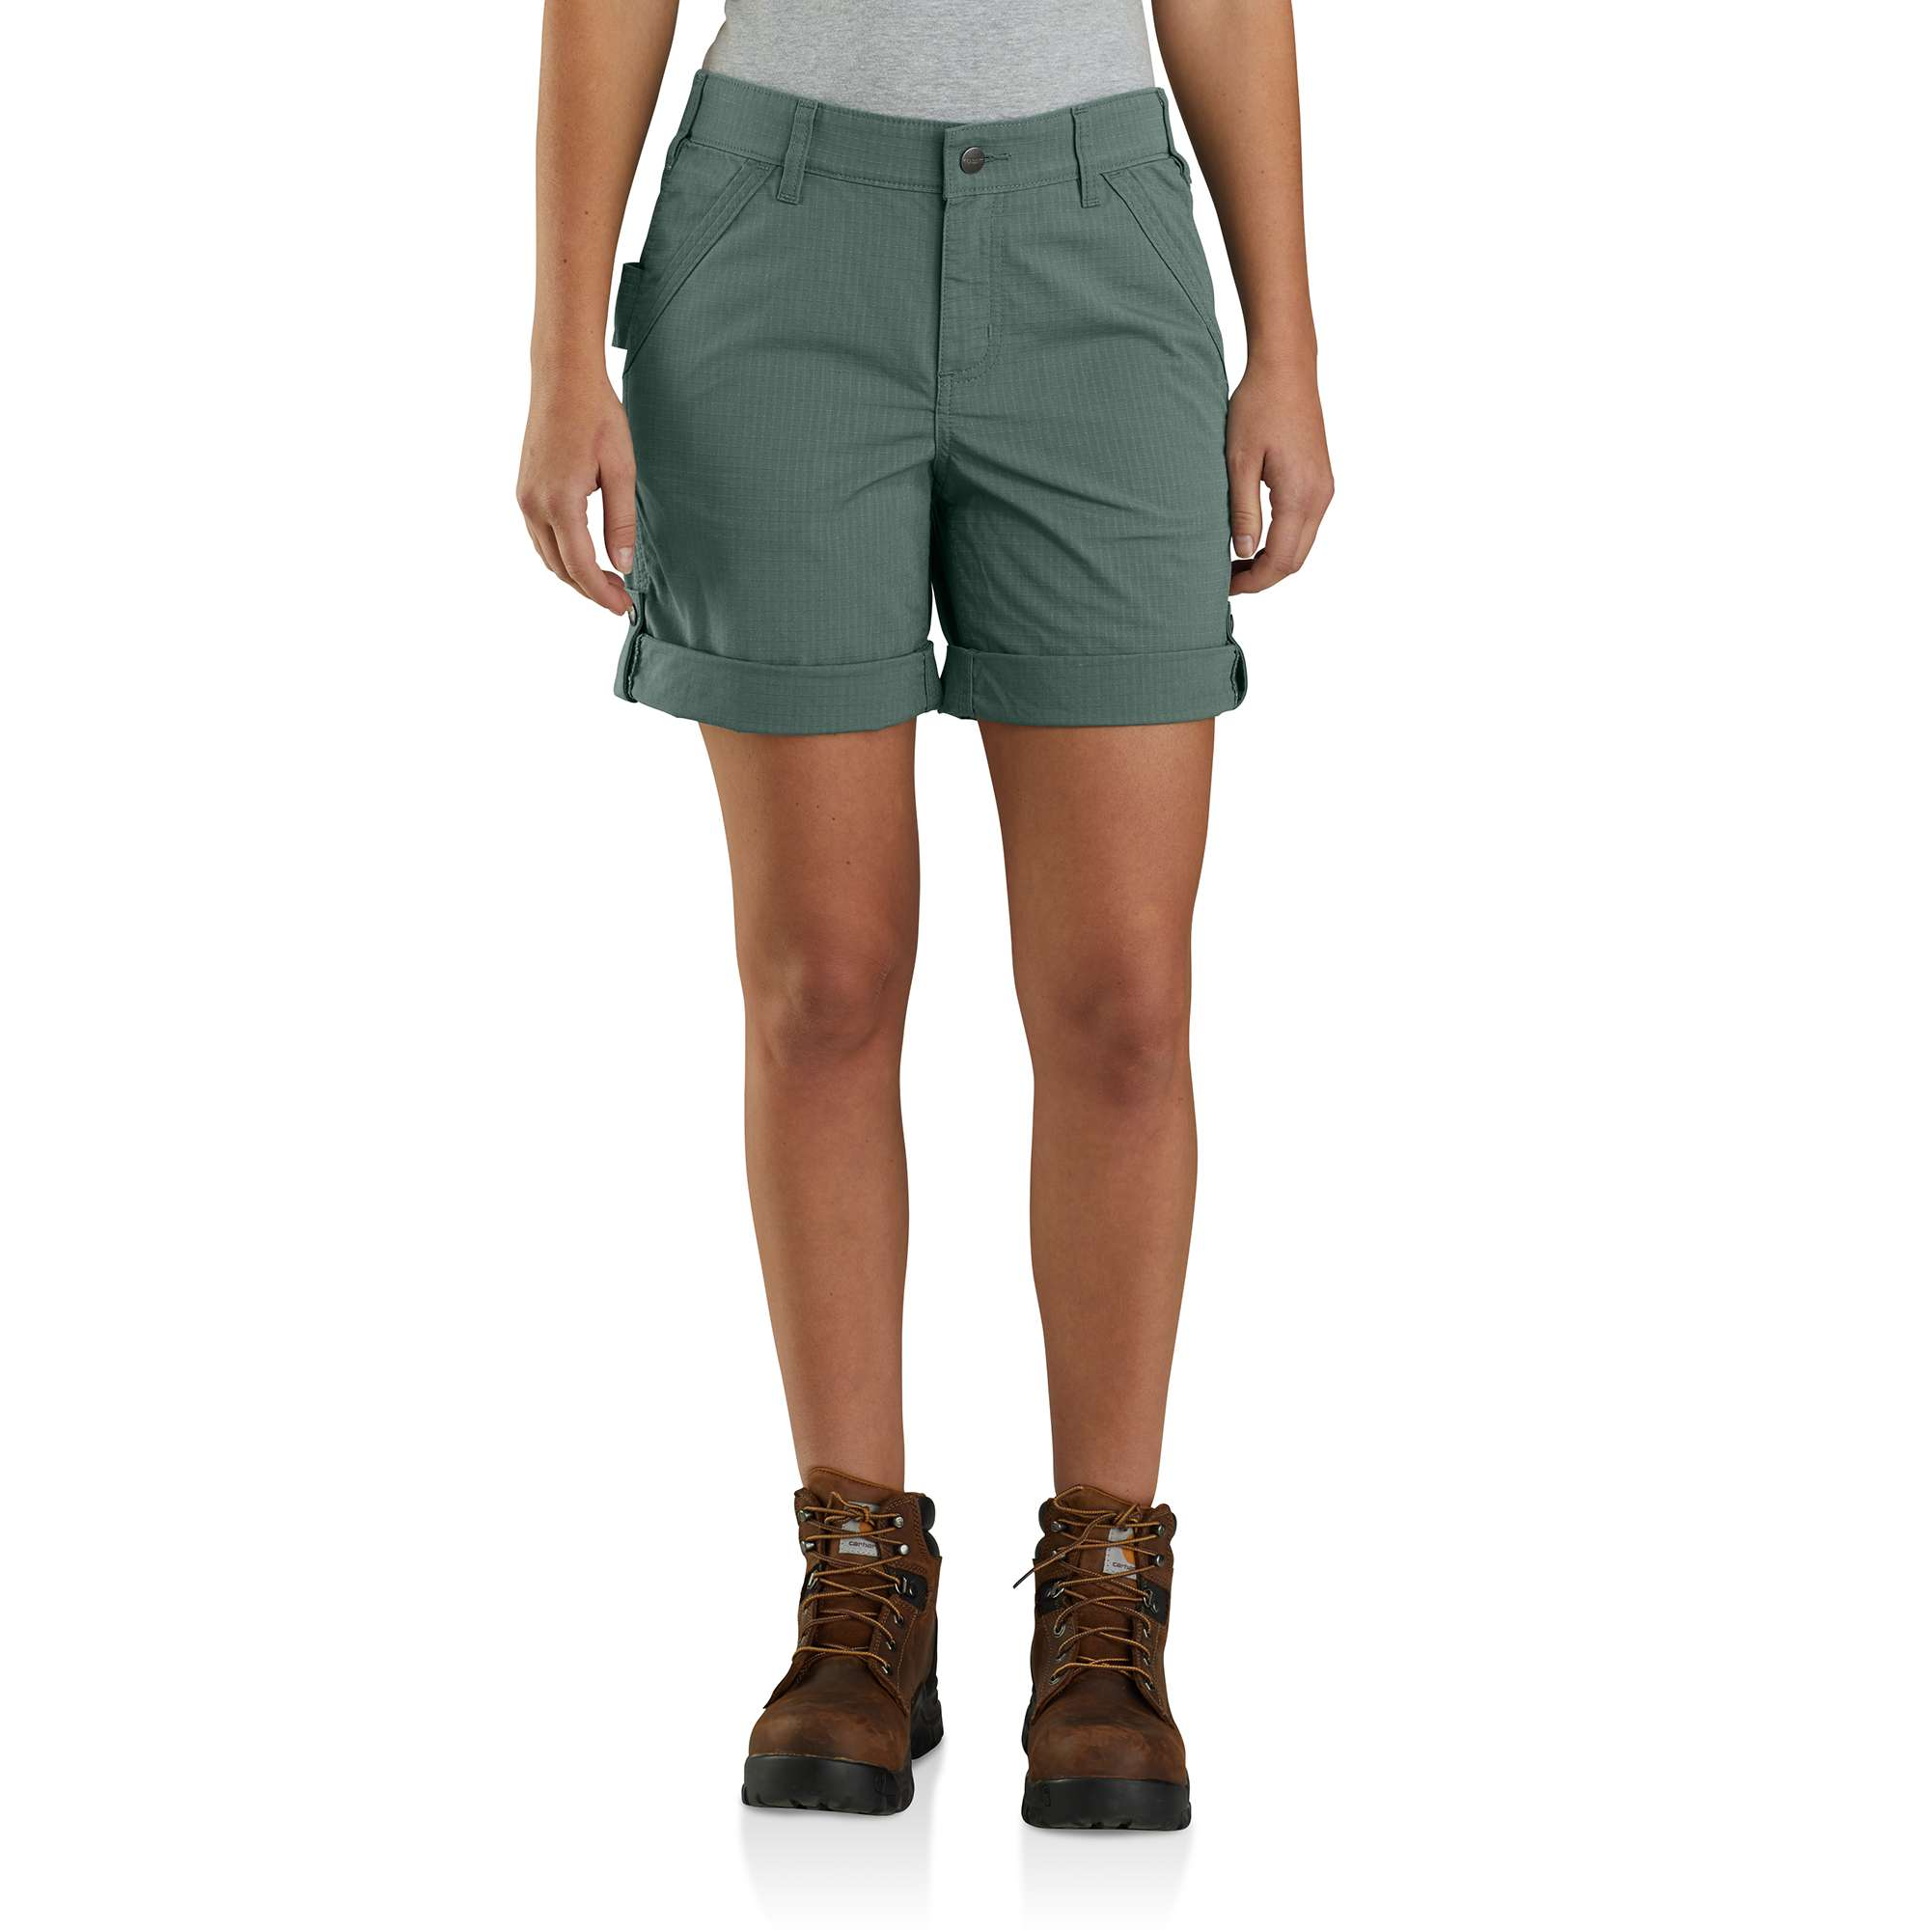 Carhartt Rugged Flex Original Fit Ripstop Five-Pocket Shorts